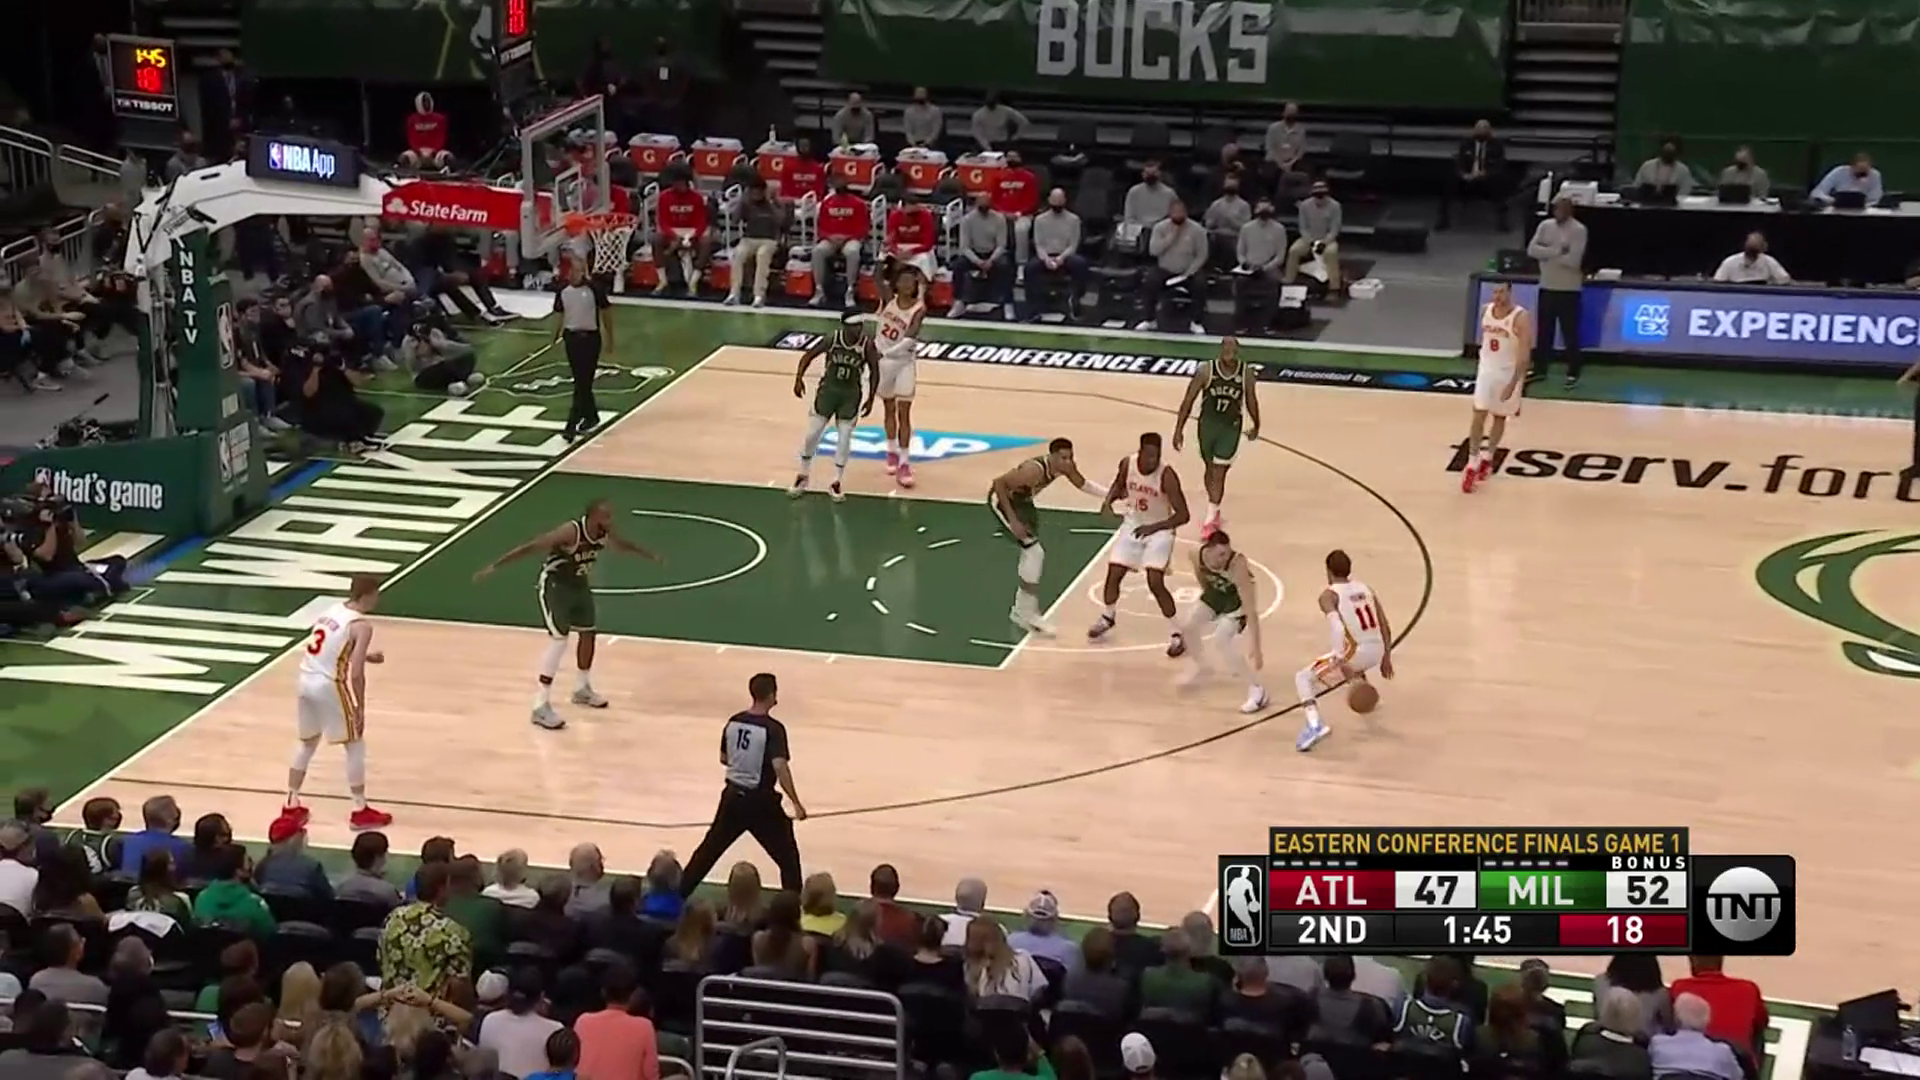 Young Puts On Outstanding Performance vs. Bucks